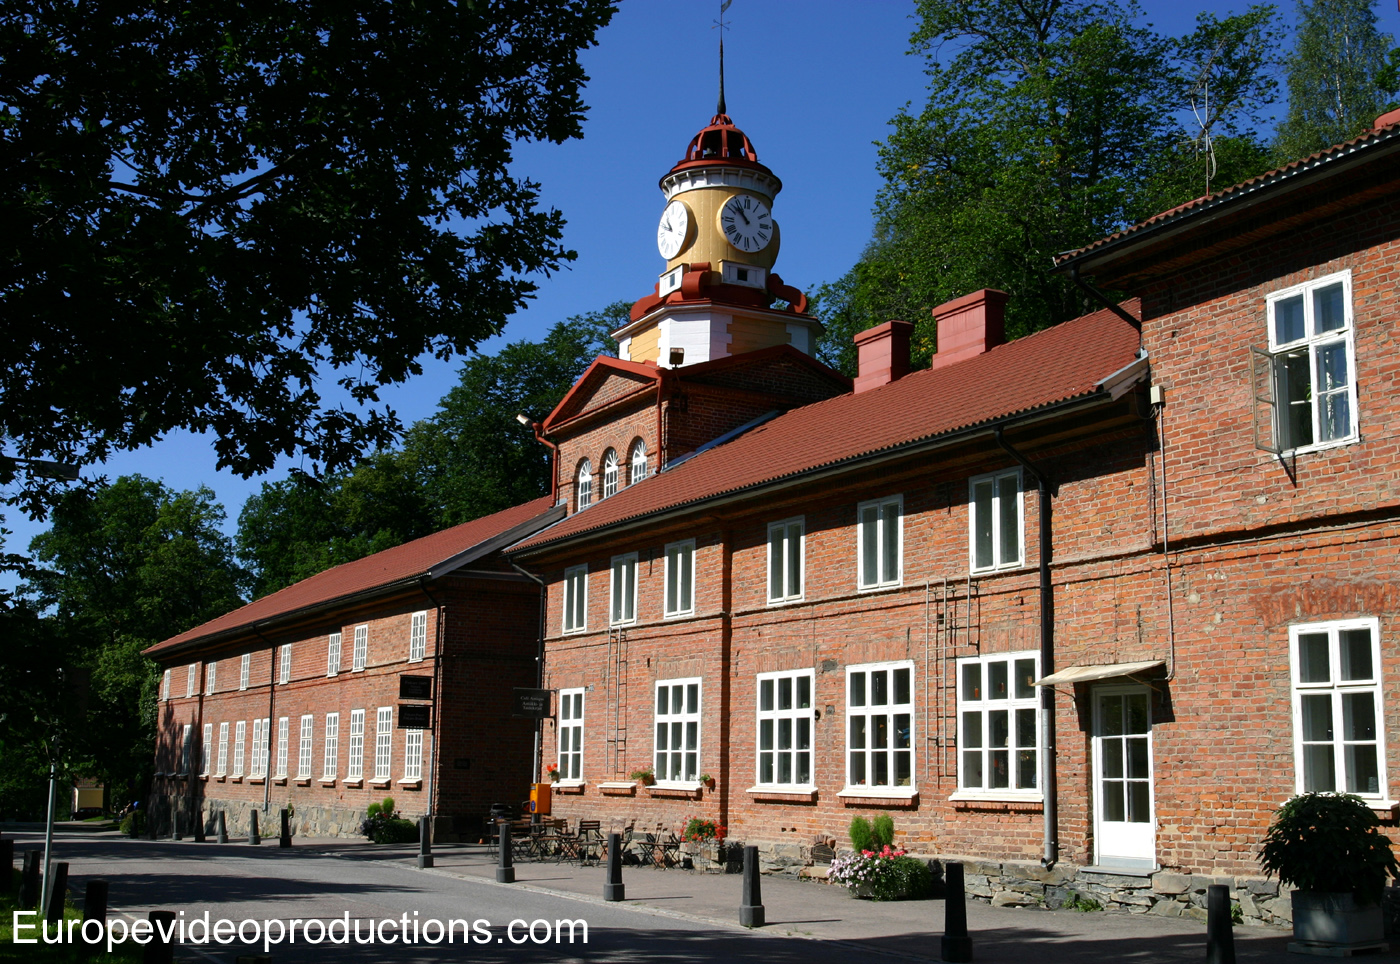 Fiskars design and art Village in Uusimaa region in Southern Finland